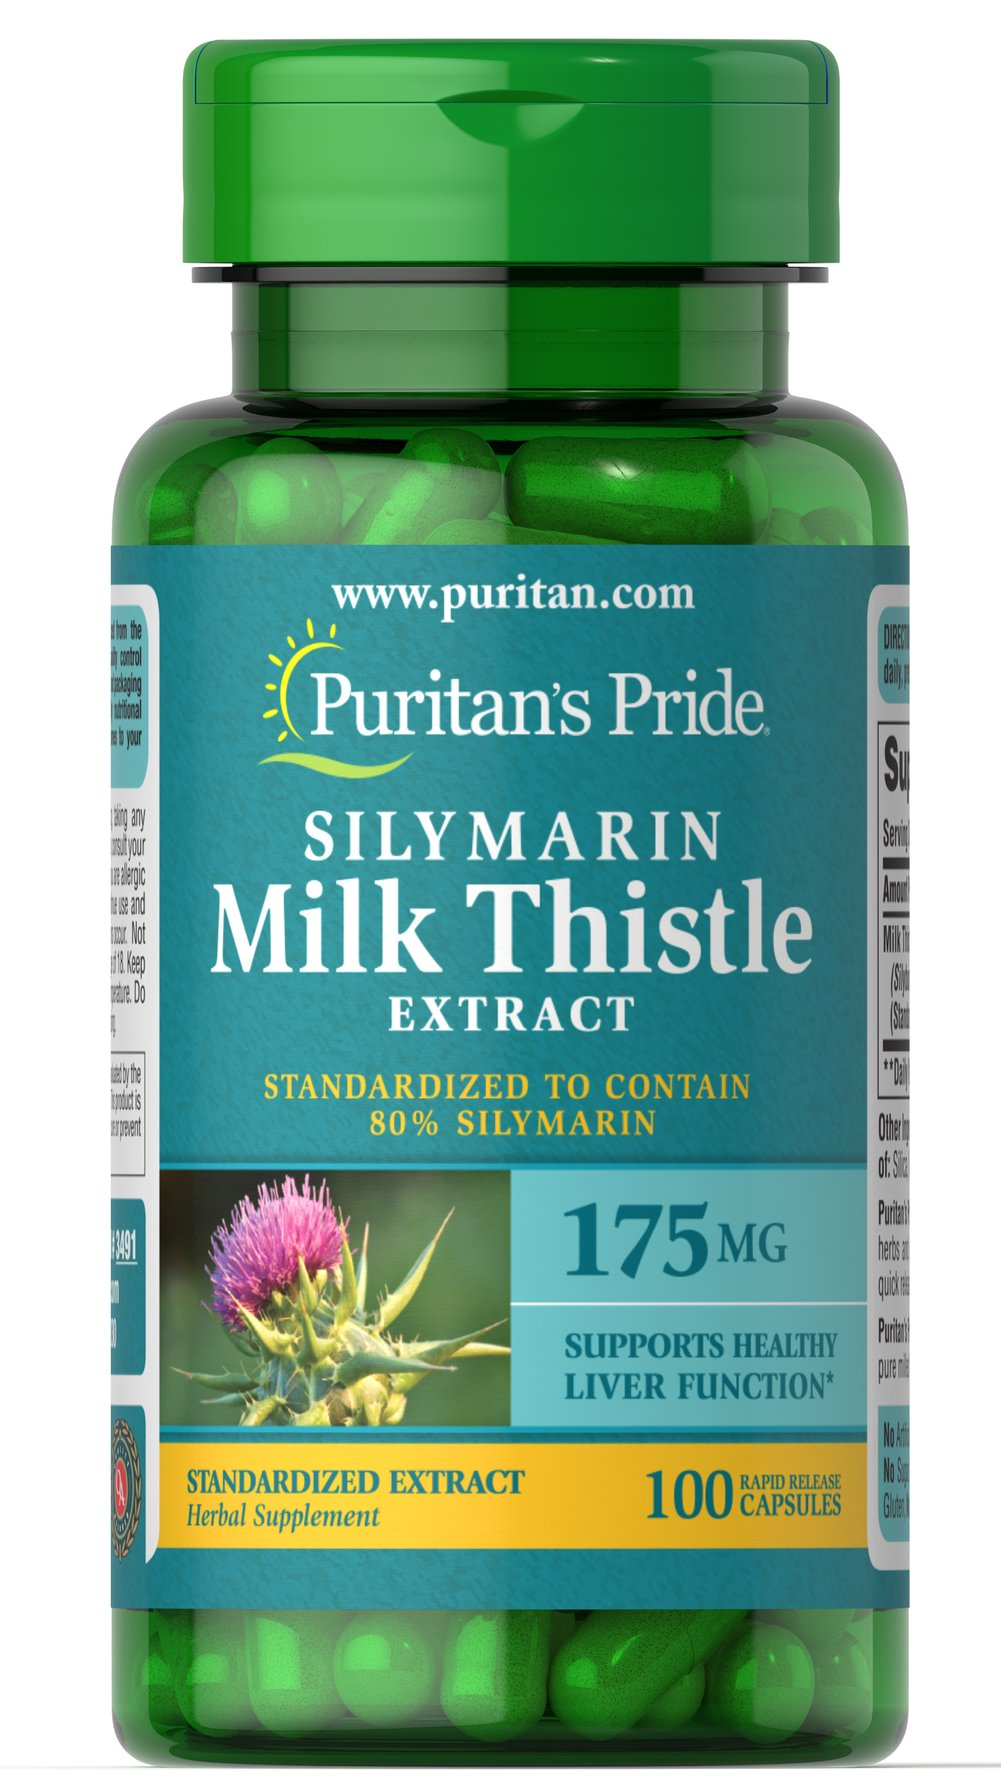 Milk Thistle Standardized 175 mg (Silymarin) Thumbnail Alternate Bottle View